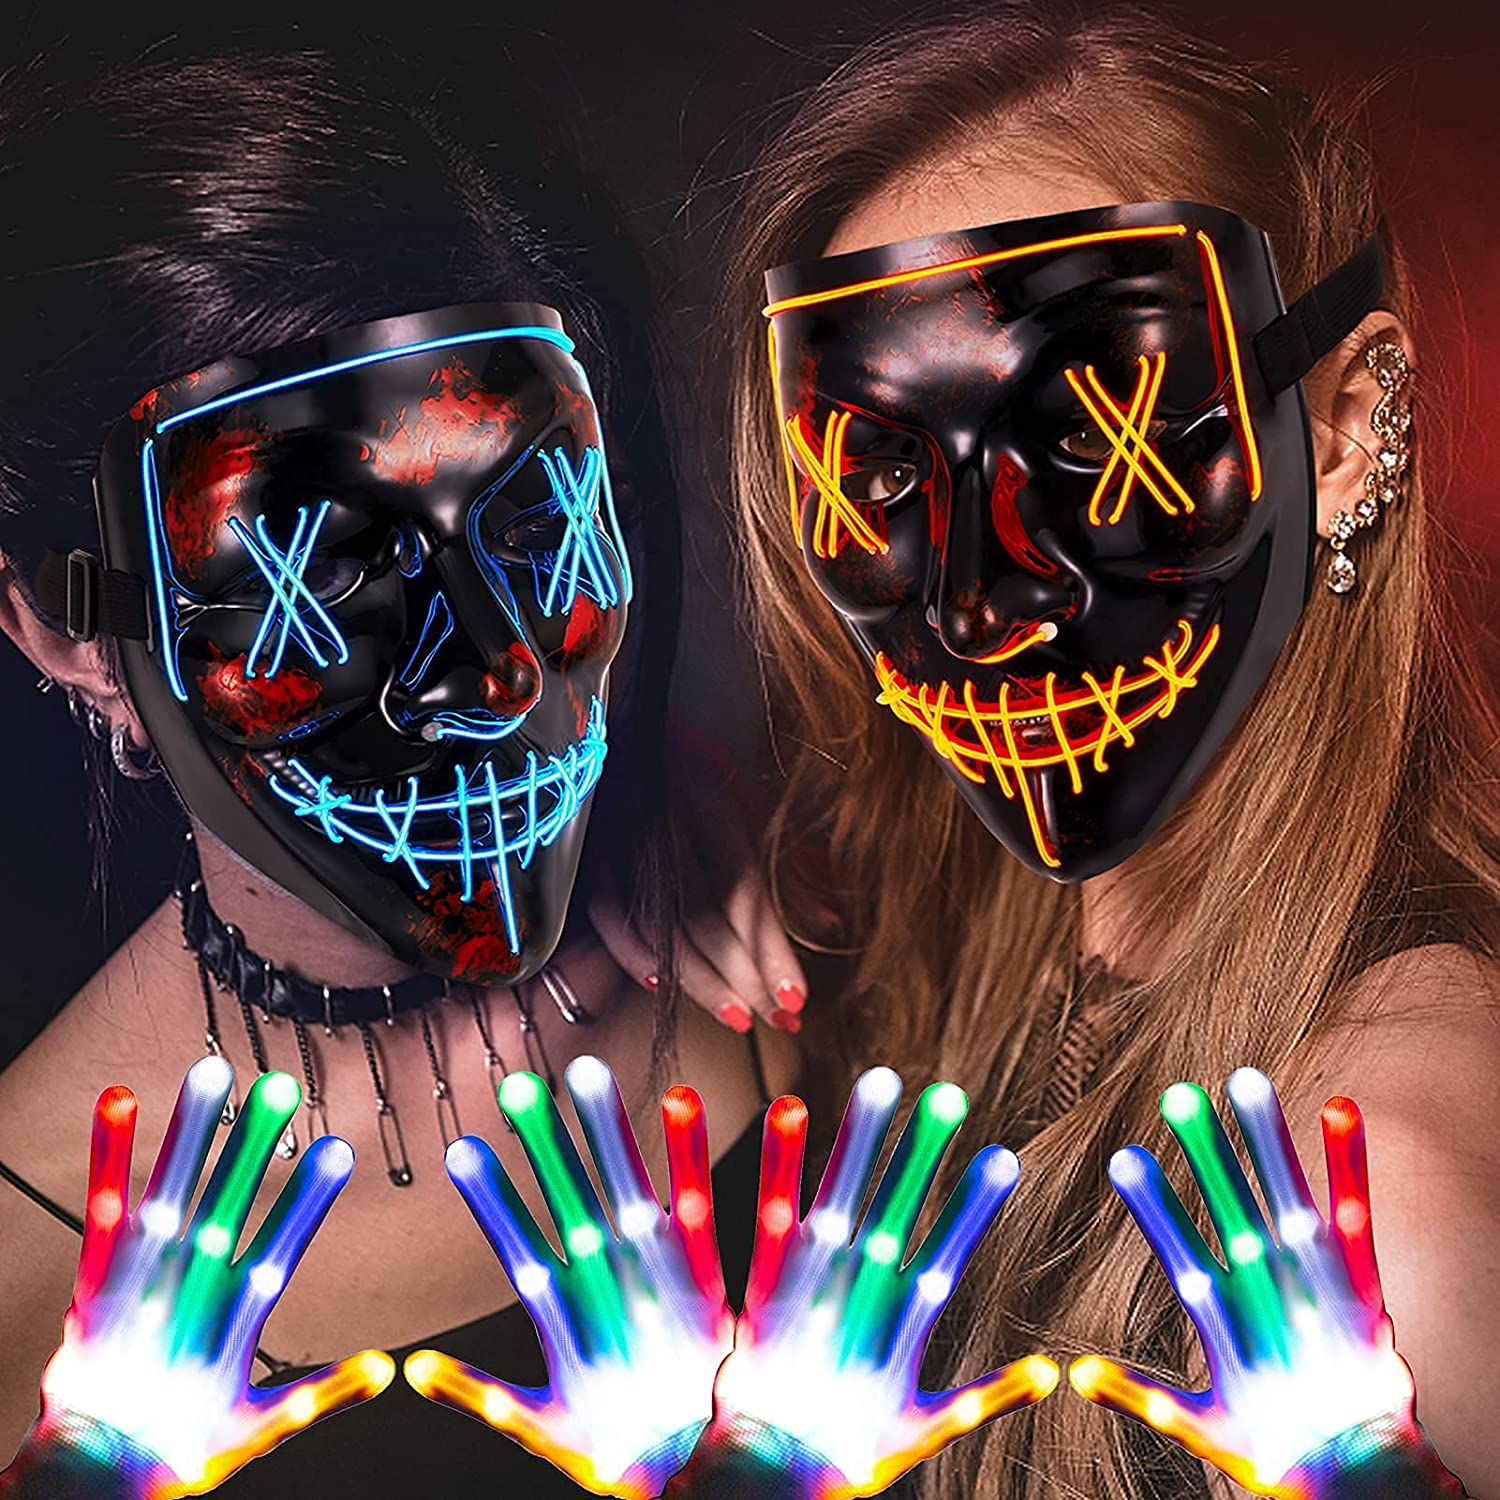 ThinkMax 2 Limited time cheap sale Pack Halloween Ranking integrated 1st place Masks Led fo Light Gloves and Up